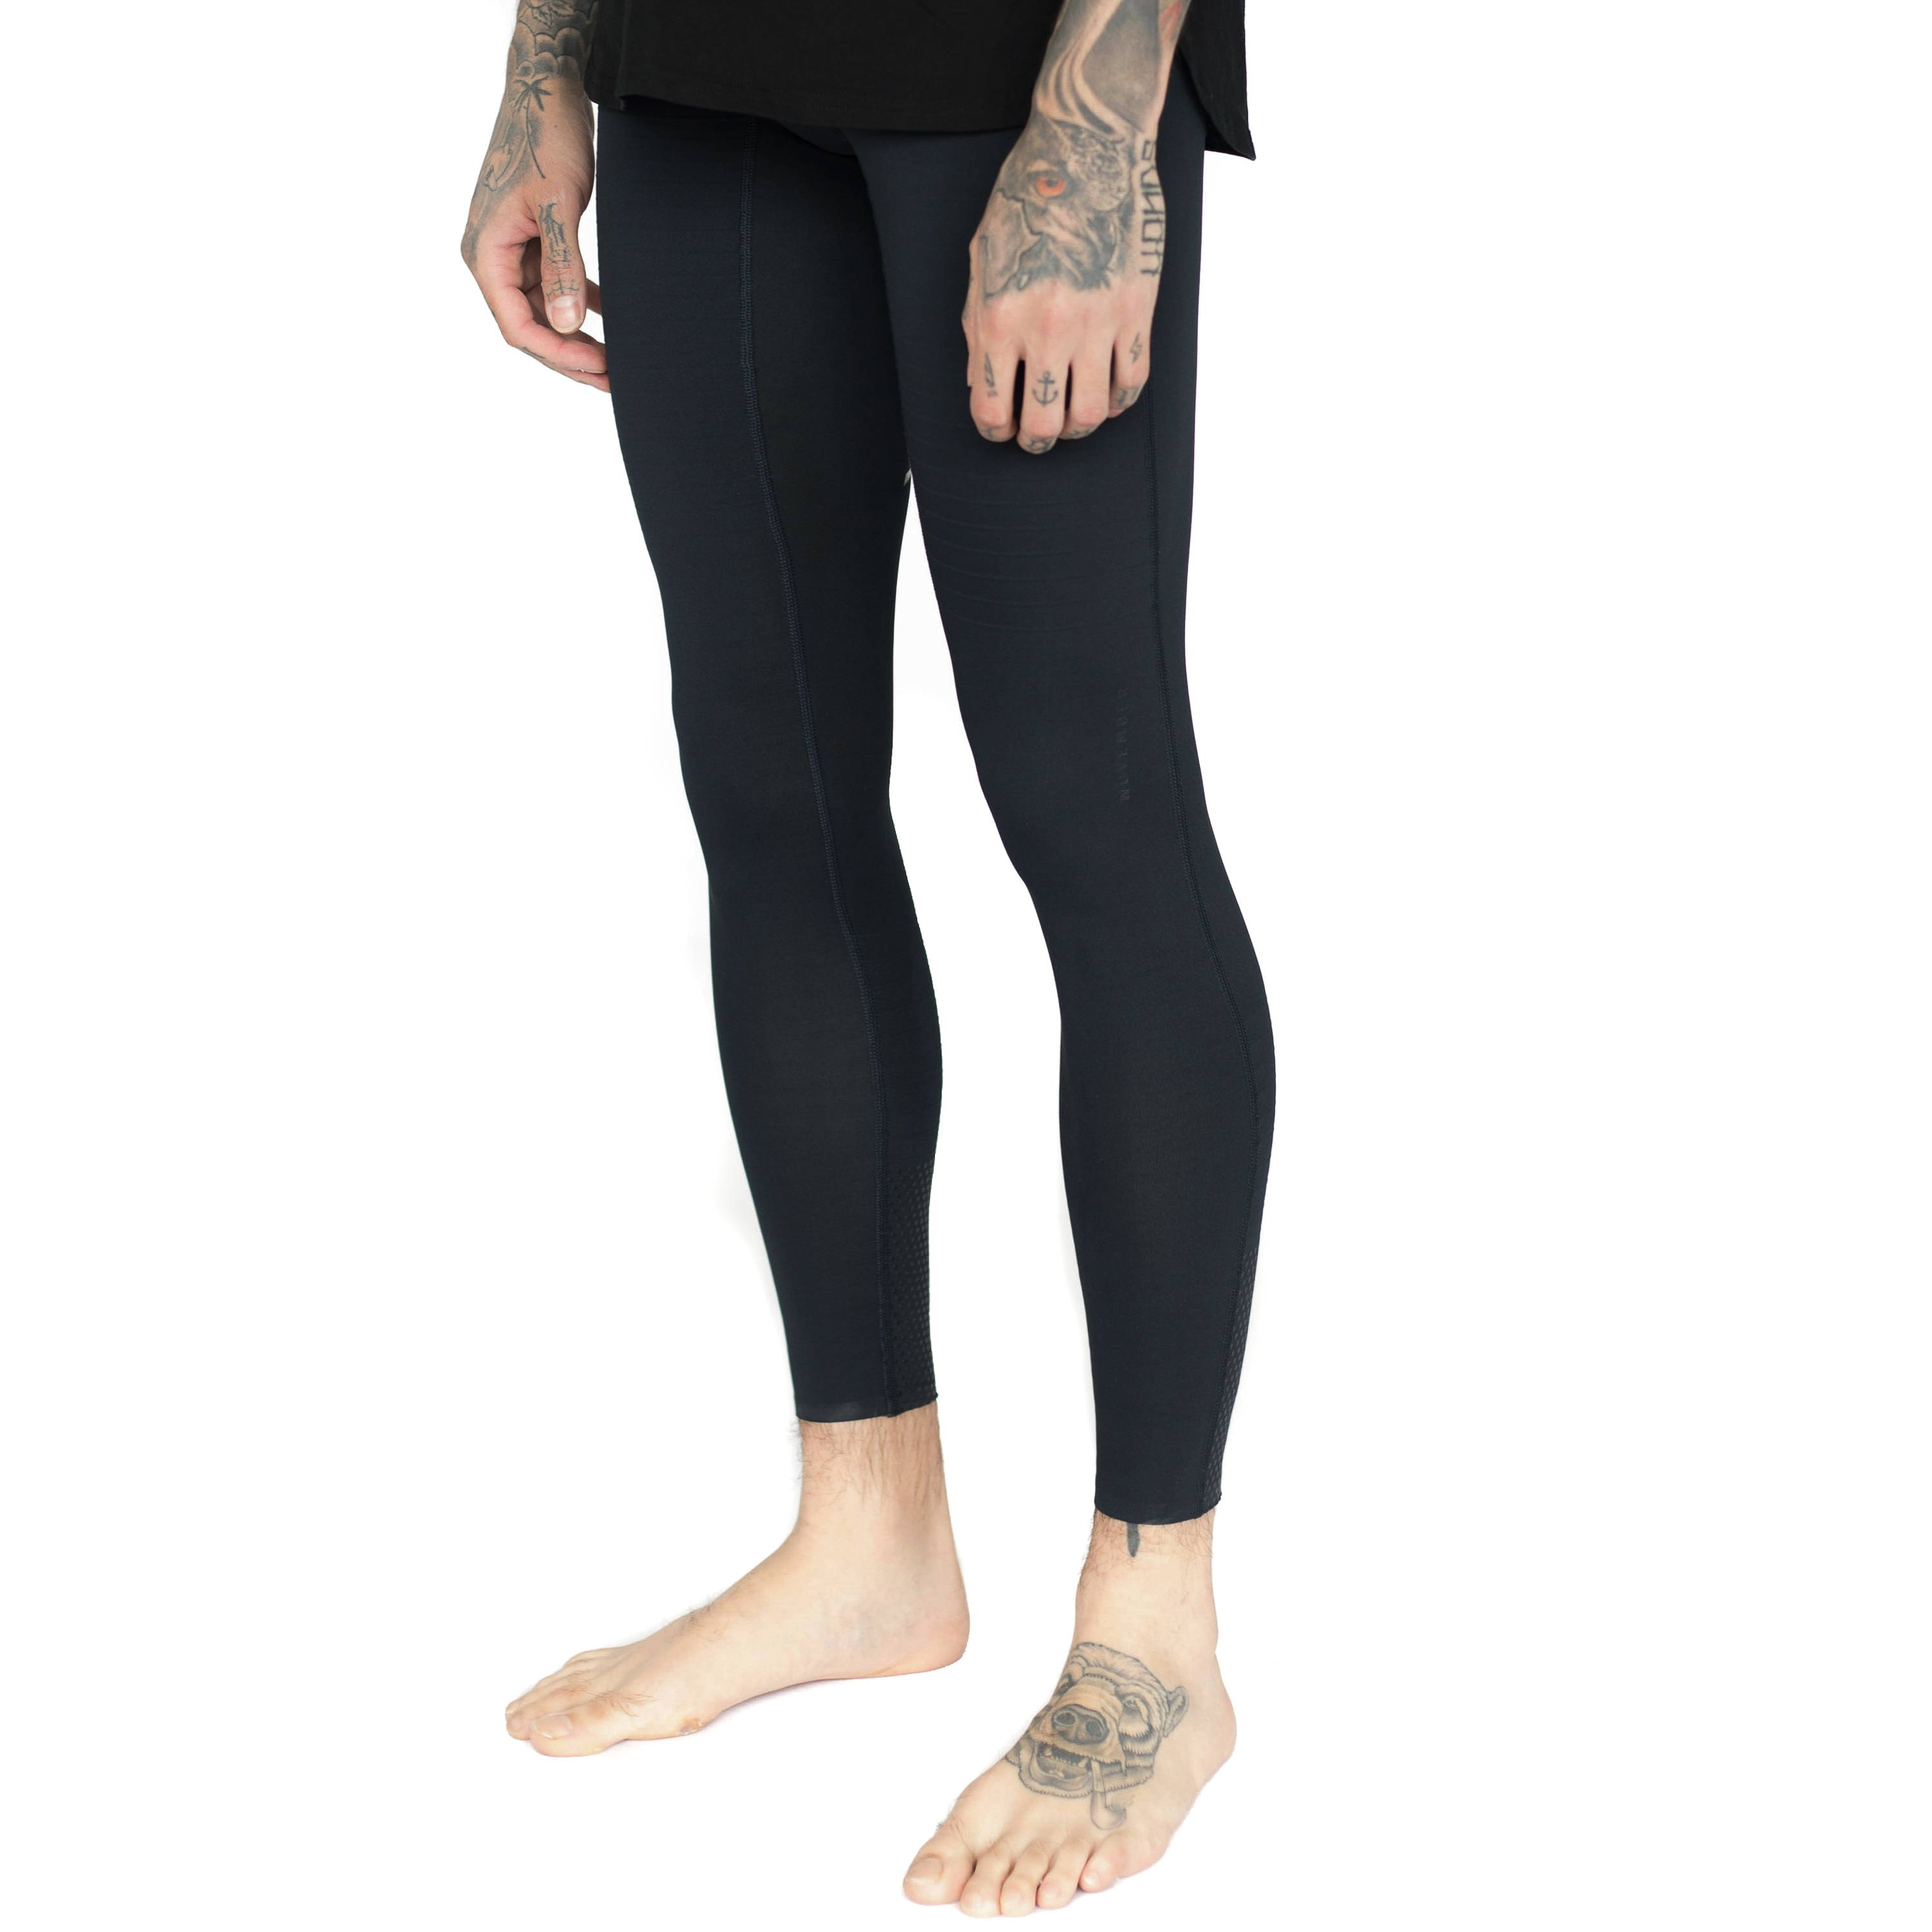 Mens-Midnight Black-Compression Tight-4